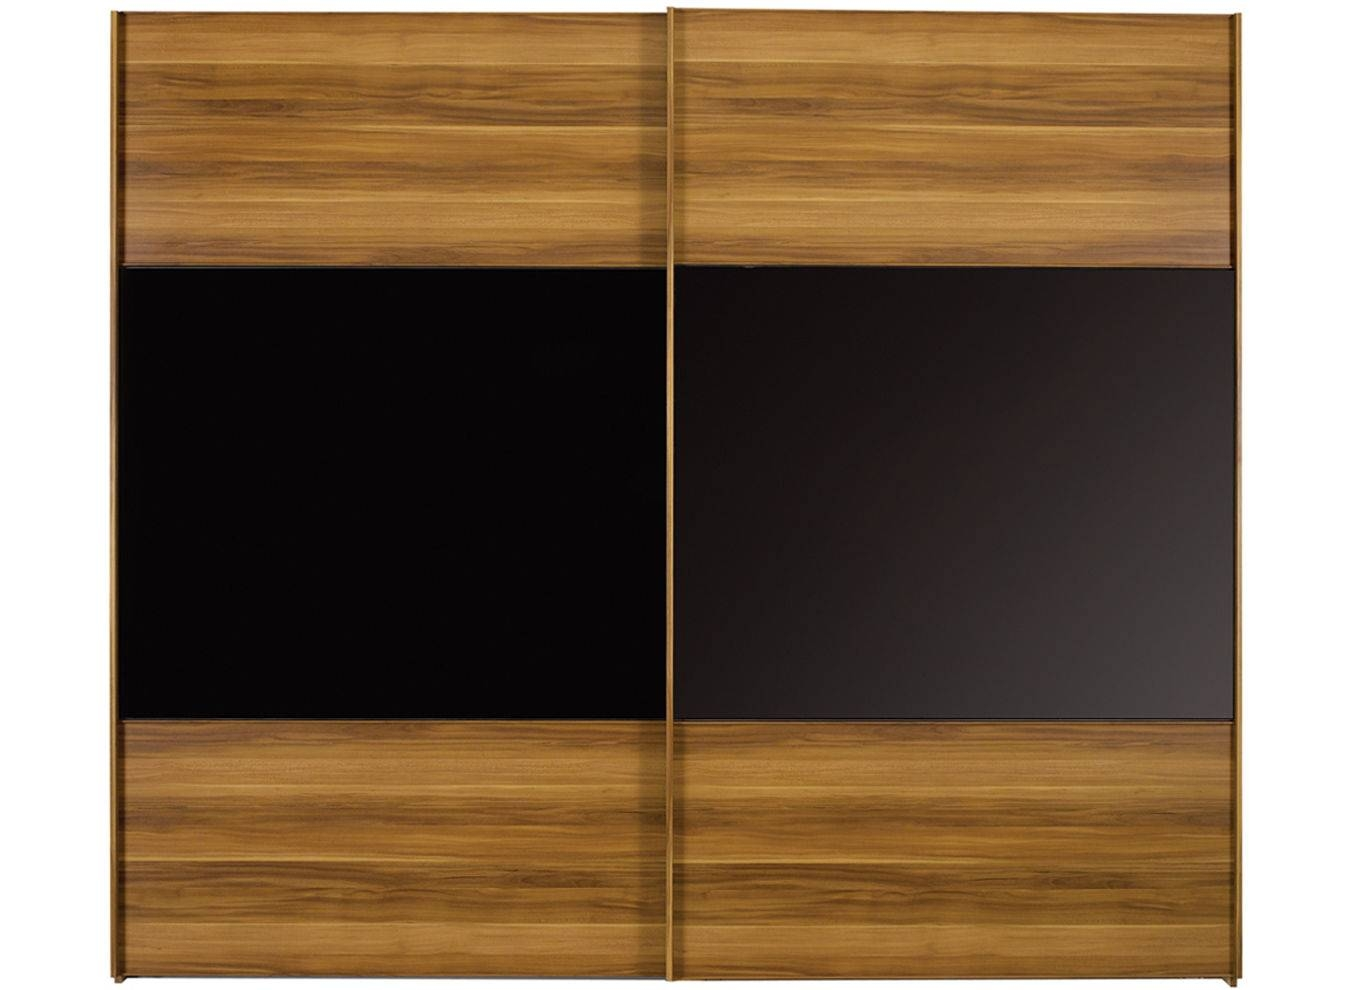 Berkeley Black Sliding Wardrobe - Extra Large with 2 Sliding Door Wardrobes (Image 2 of 15)